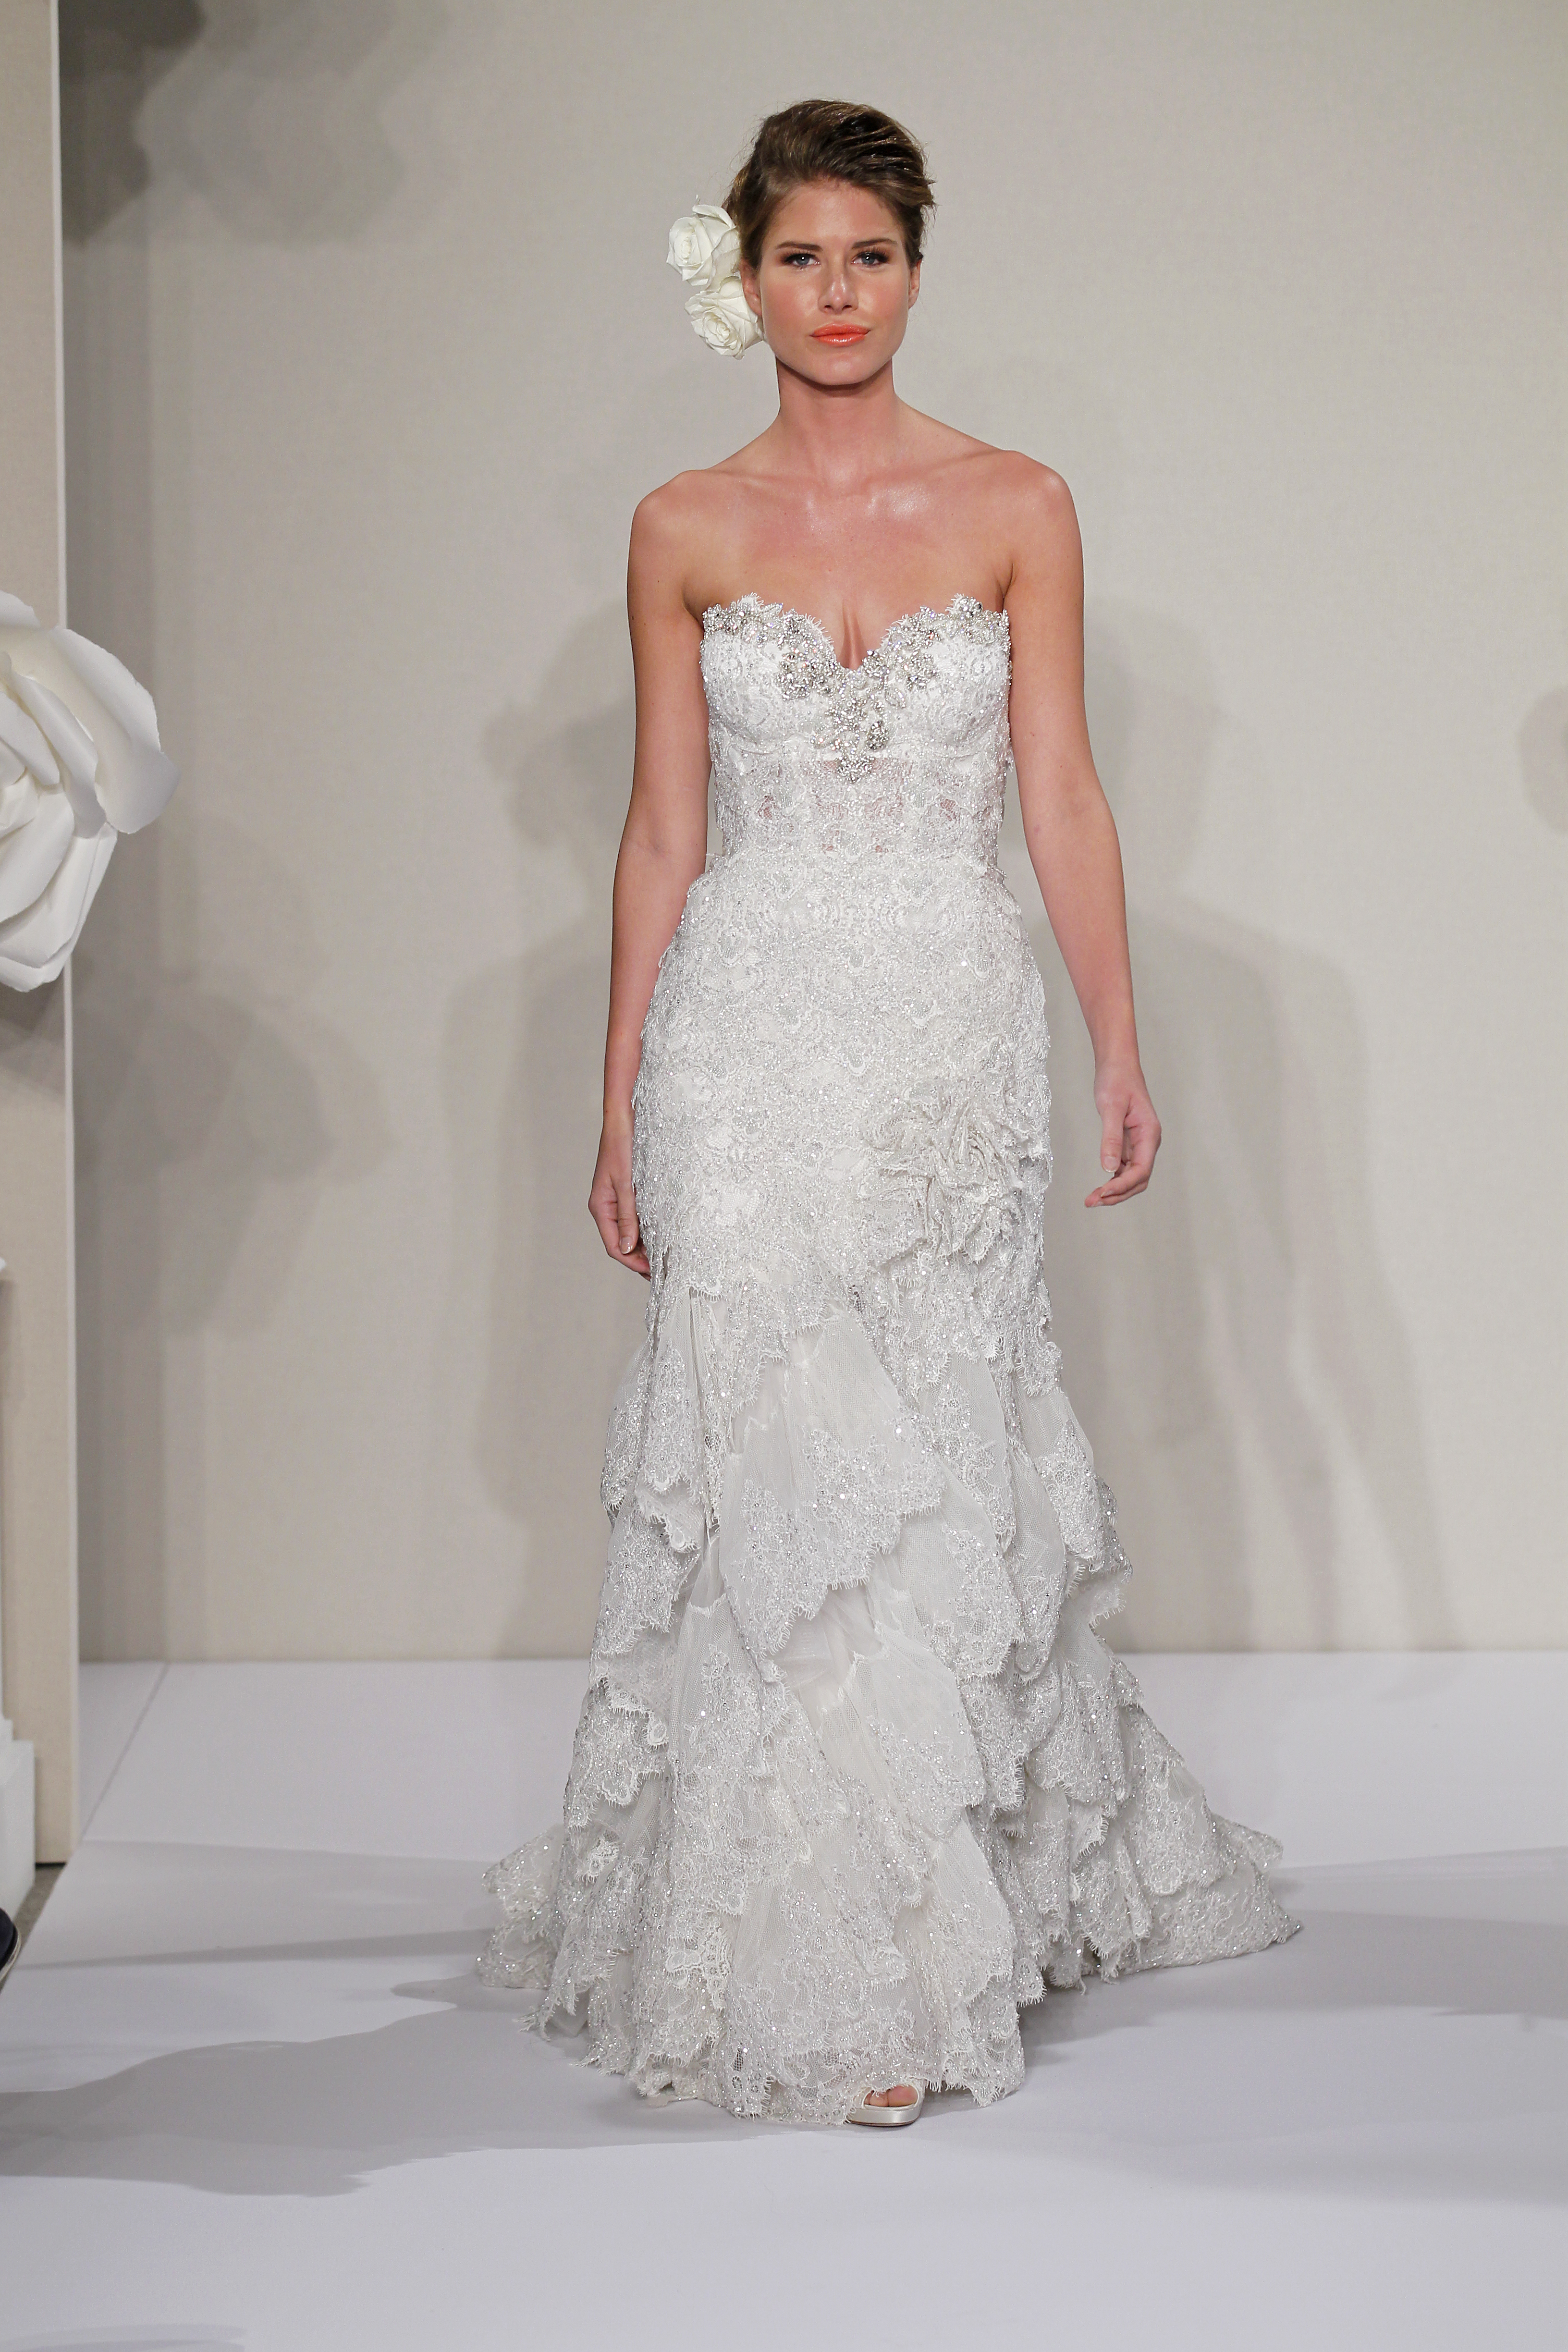 Wedding Dresses, Sweetheart Wedding Dresses, A-line Wedding Dresses, Ruffled Wedding Dresses, Lace Wedding Dresses, Romantic Wedding Dresses, Hollywood Glam Wedding Dresses, Fashion, white, ivory, Shabby Chic, Romantic, Lace, Sweetheart, A-line, Beading, Floor, Formal, Natural, Ruffles, Sleeveless, Pnina tornai, Avant-Garde, hollywood glam, Beaded Wedding Dresses, Formal Wedding Dresses, Floor Wedding Dresses, Shabby Chic Wedding Dresses